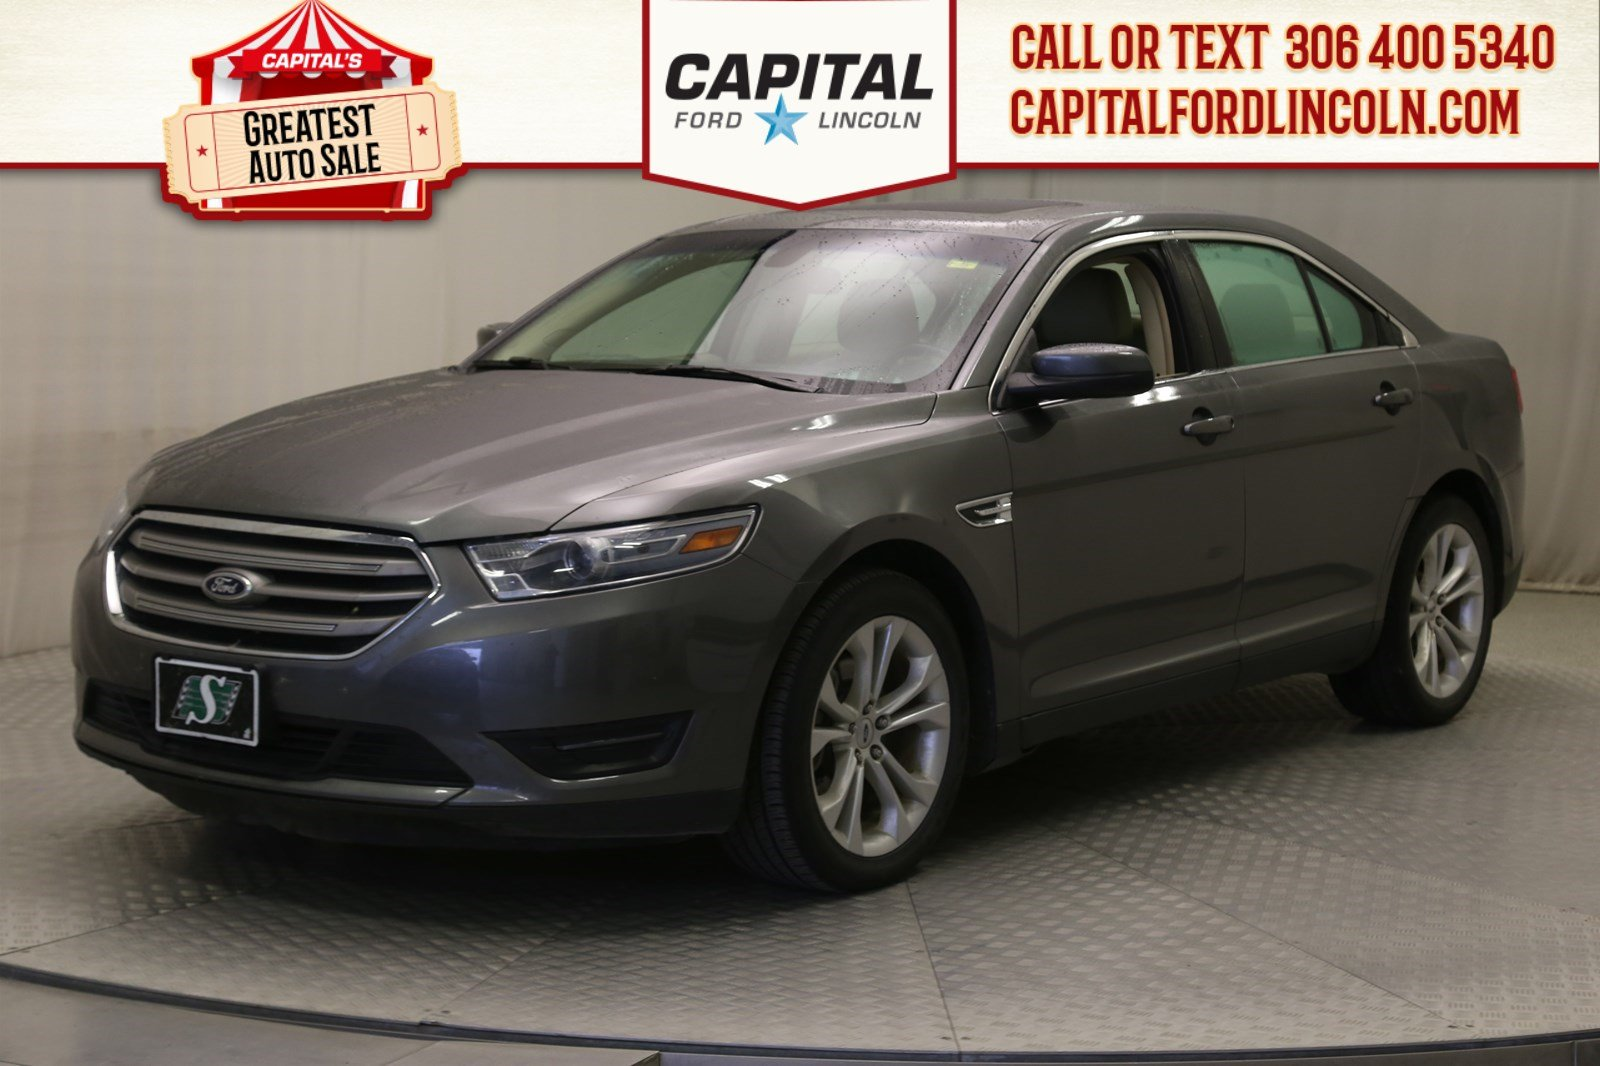 Pre-Owned 2013 Ford Taurus SEL | Leather | Sunroof | Local Trade |